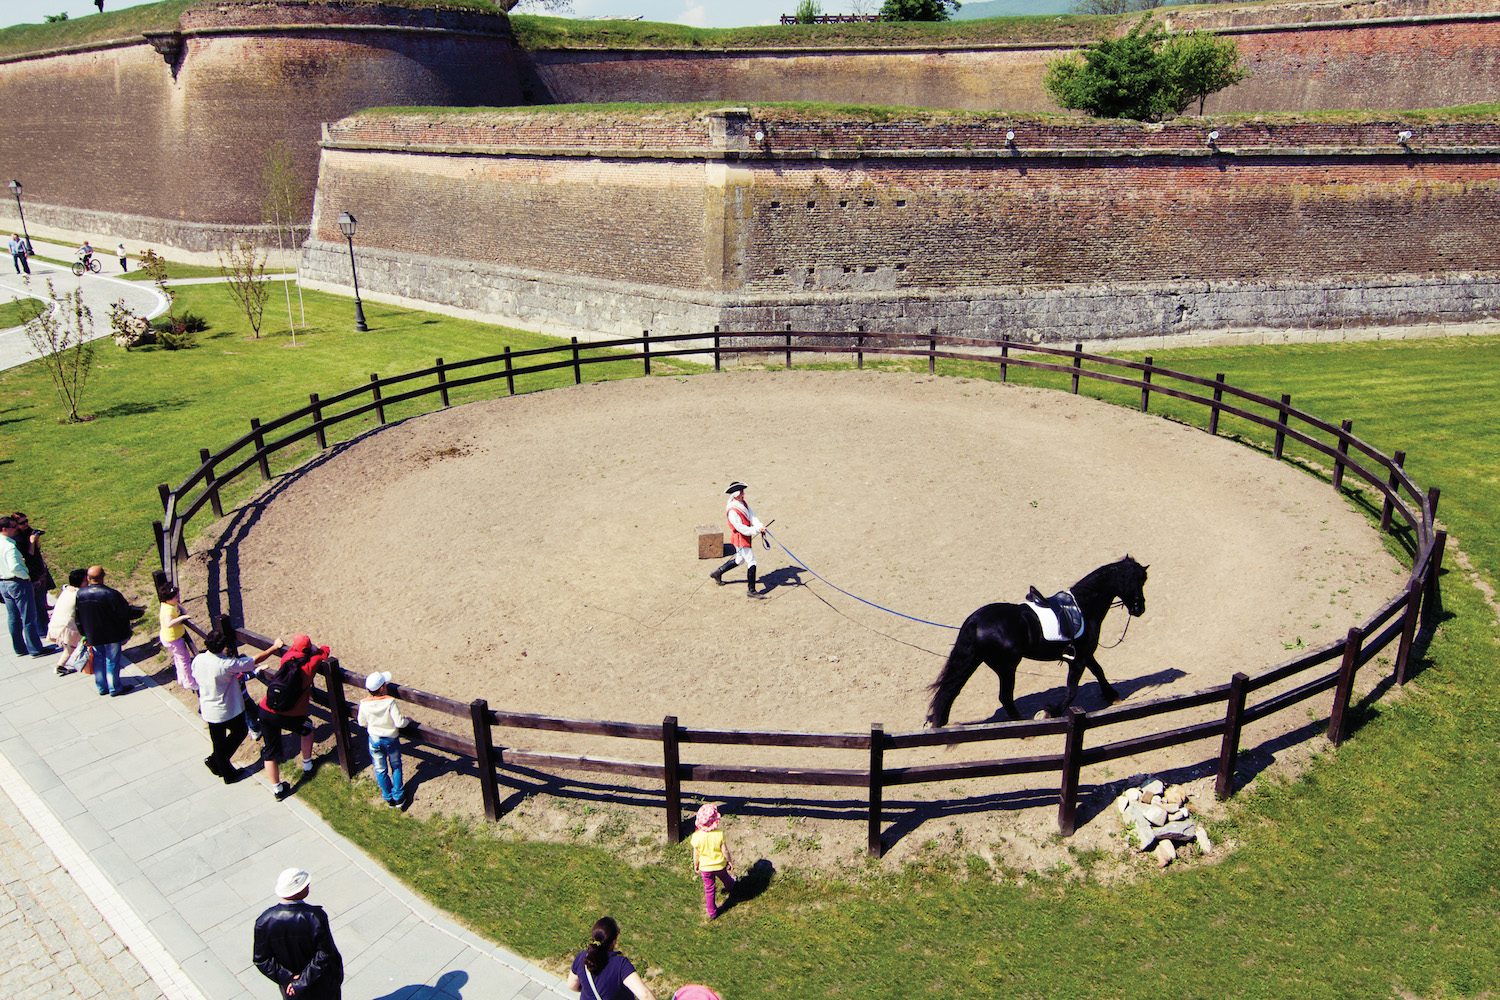 Horse riding in the Citadel